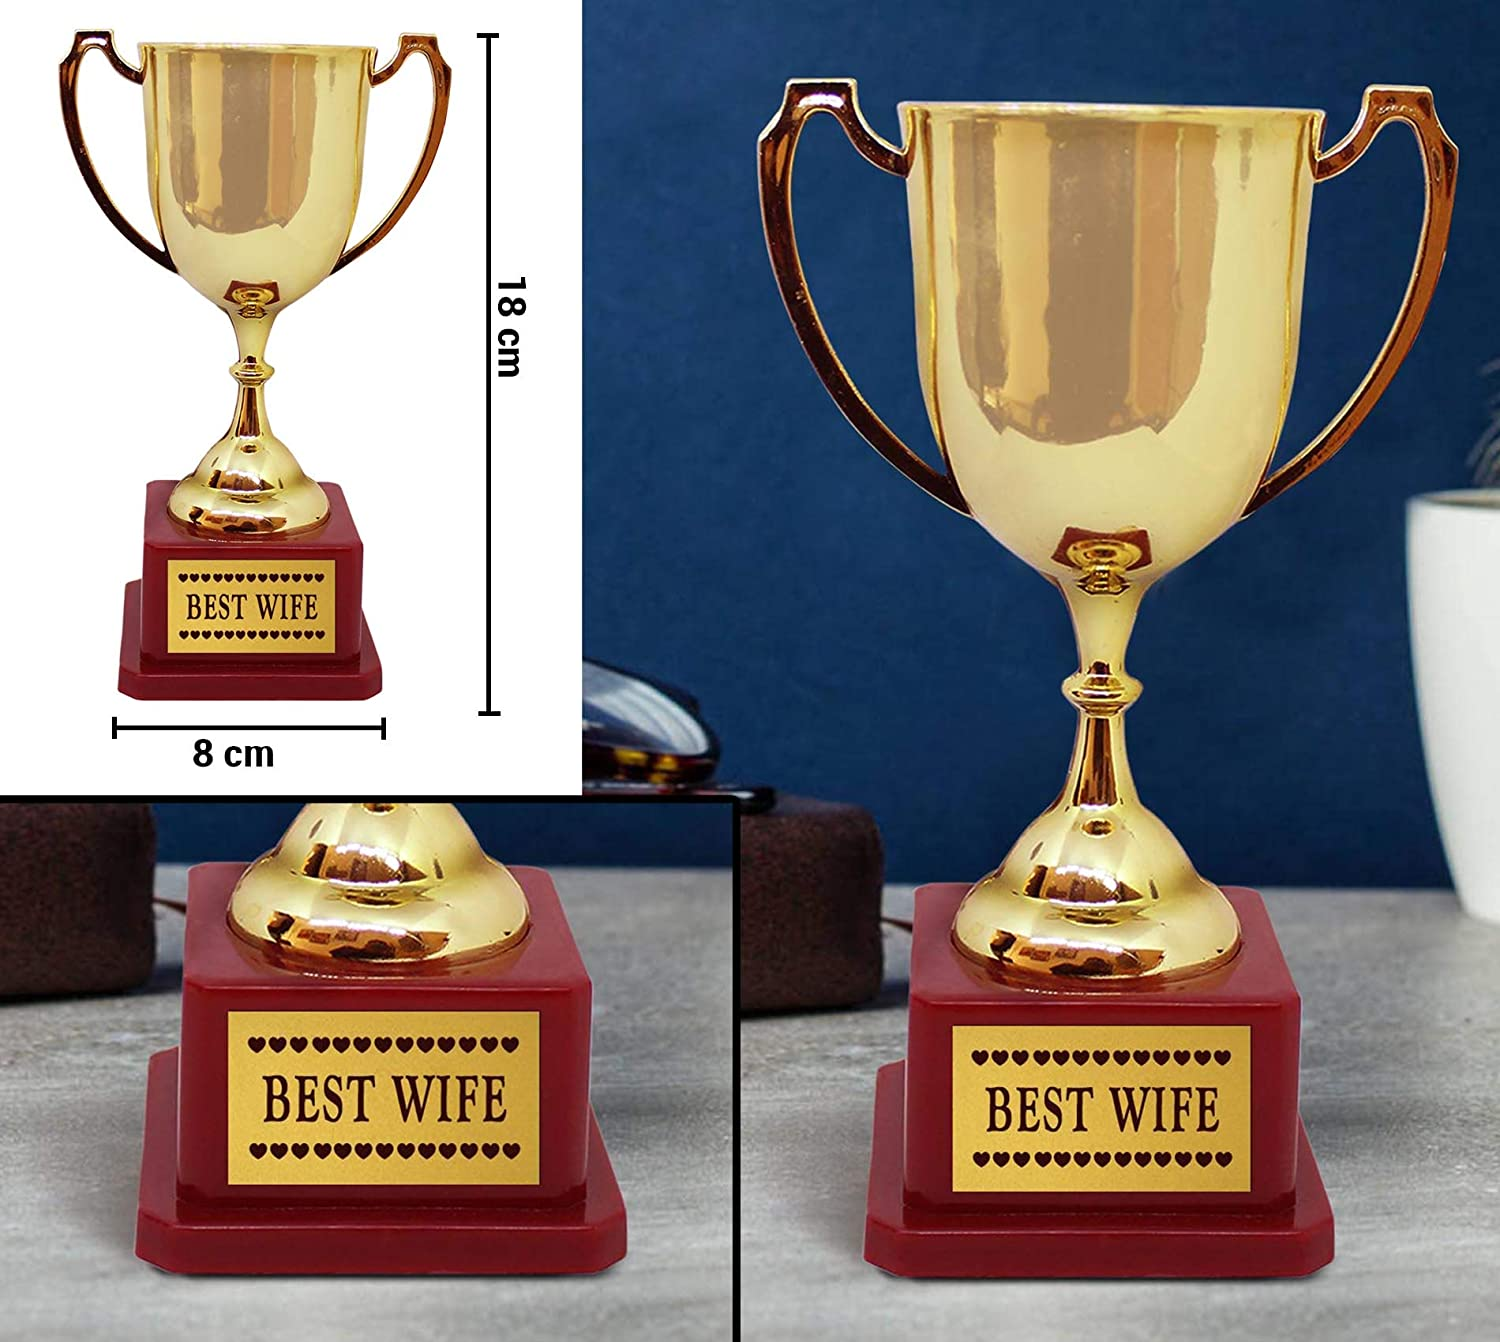 with Golden Trophy 18cm X14cm TiedRibbons Tied Ribbons Romantic Birthday for Wife Quoted Wooden Frame Image Replaceable